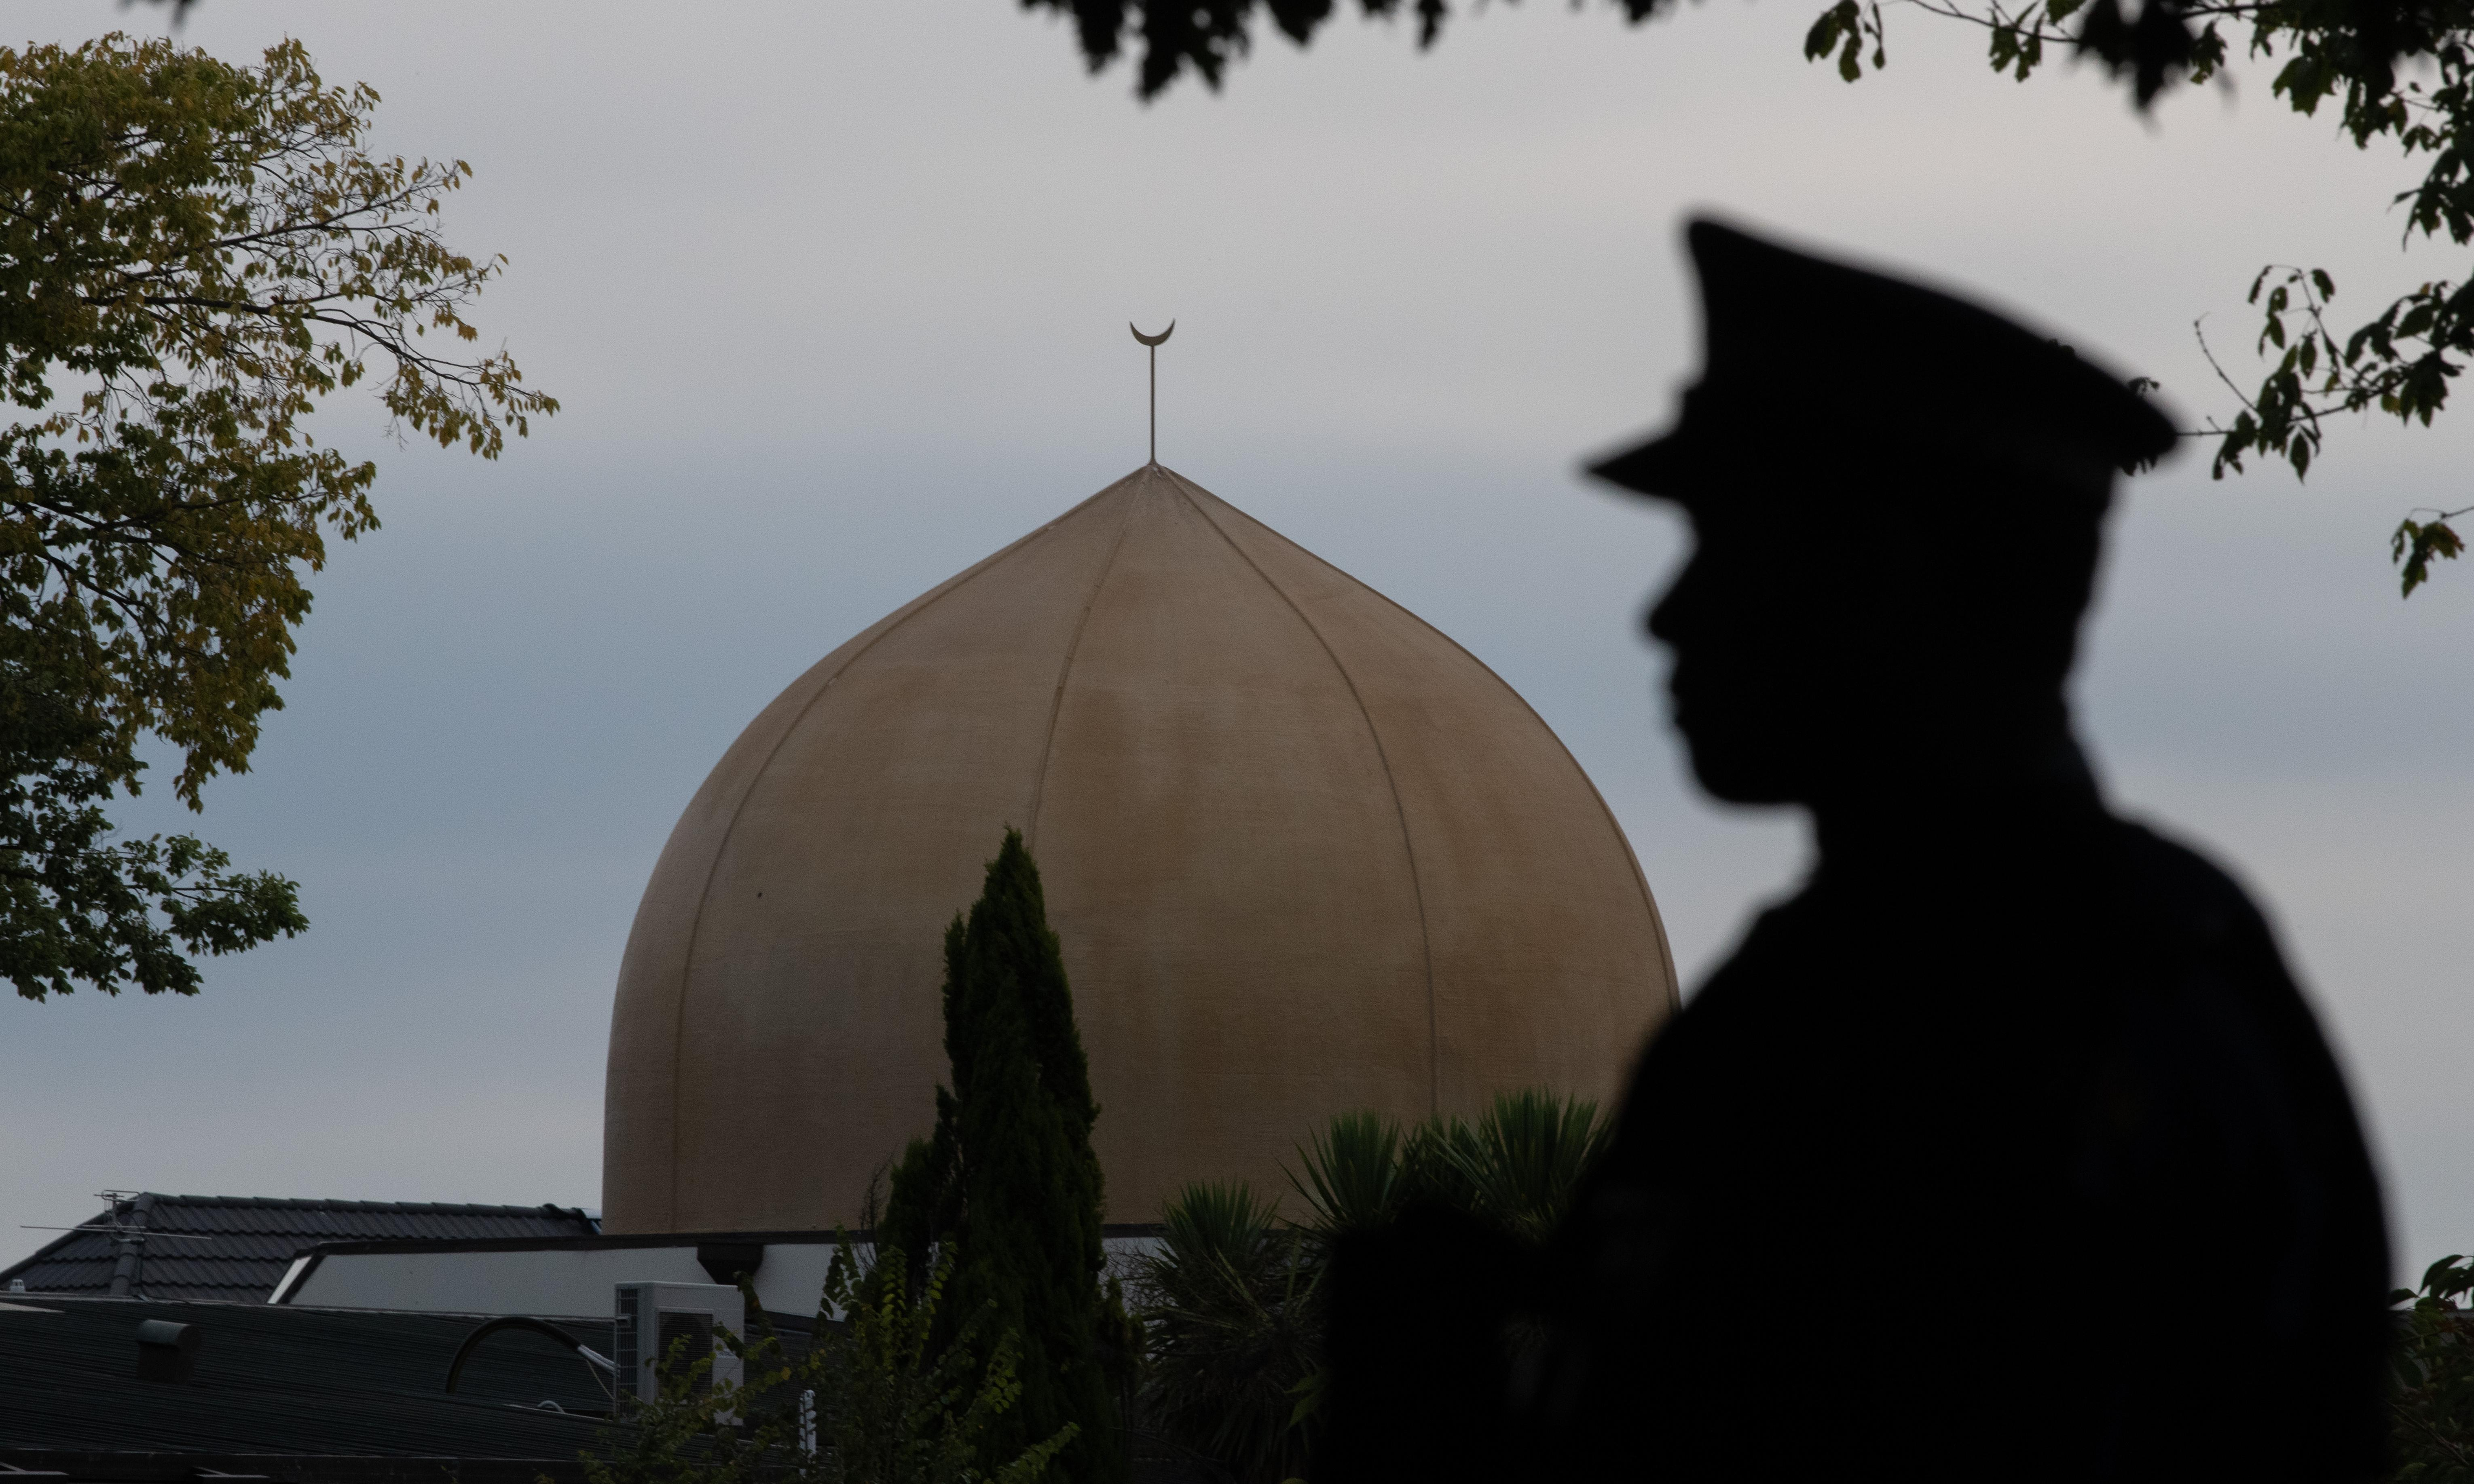 Christchurch suspect: Europe investigates possible far-right links